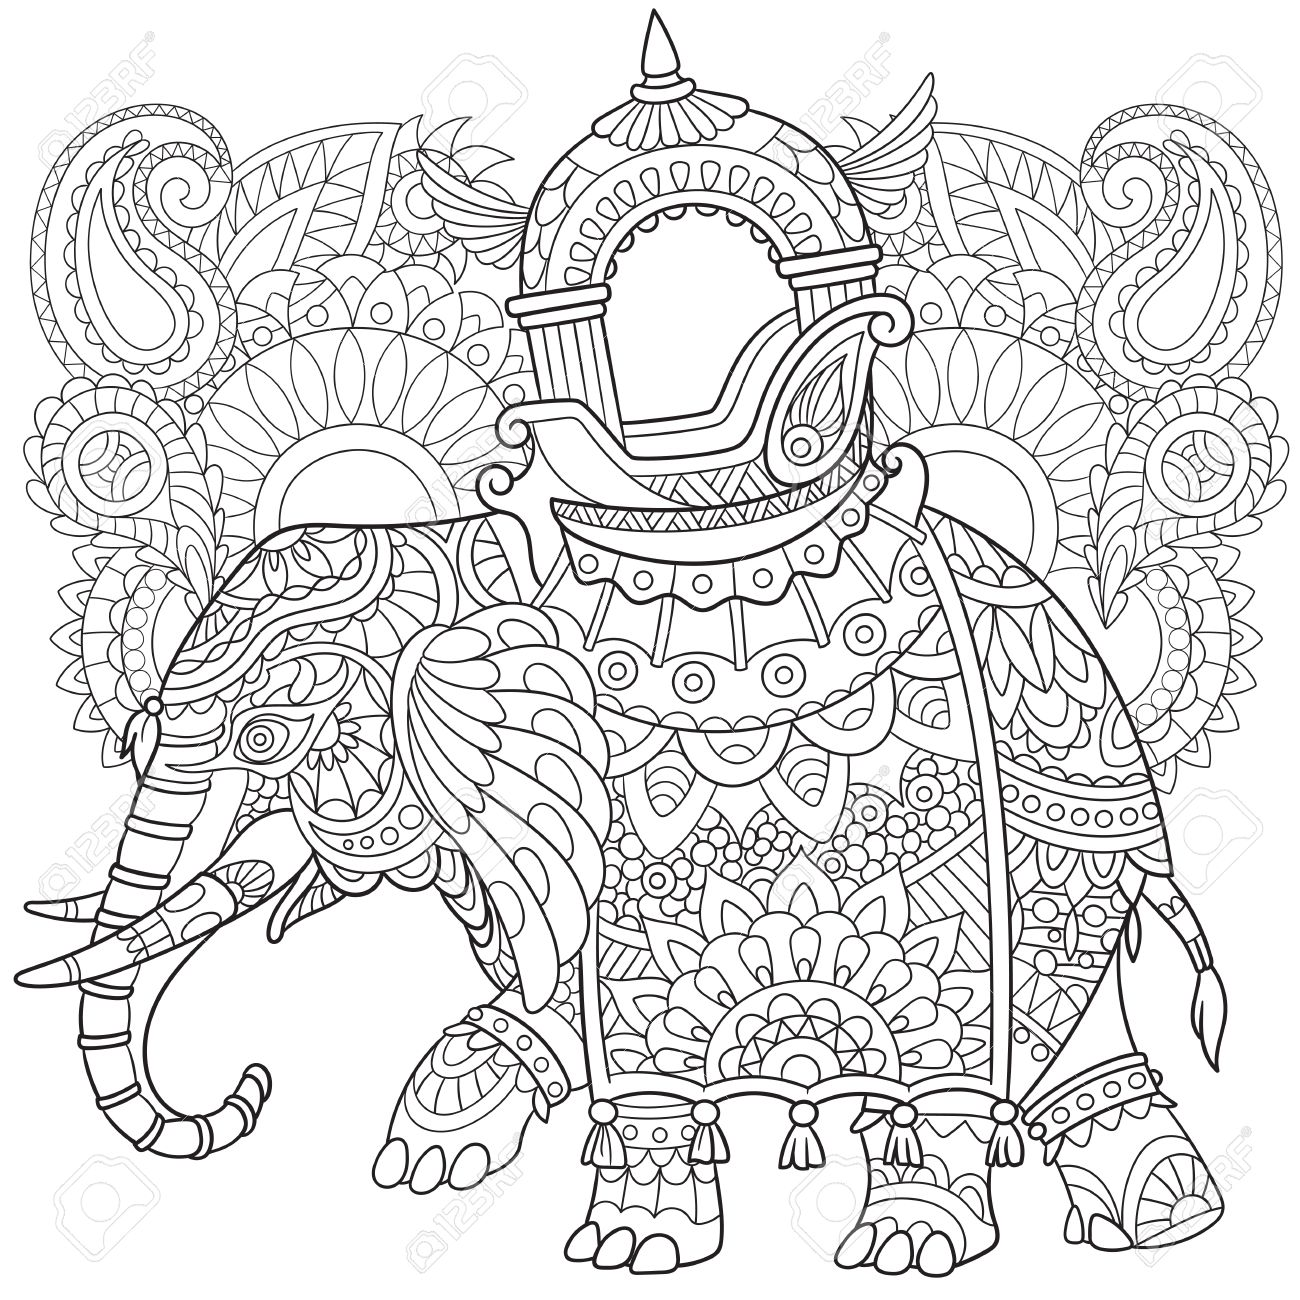 Cartoon Elephant With Paisley And Mehndi Symbols Sketch For Adult Antistress Coloring Page Hand